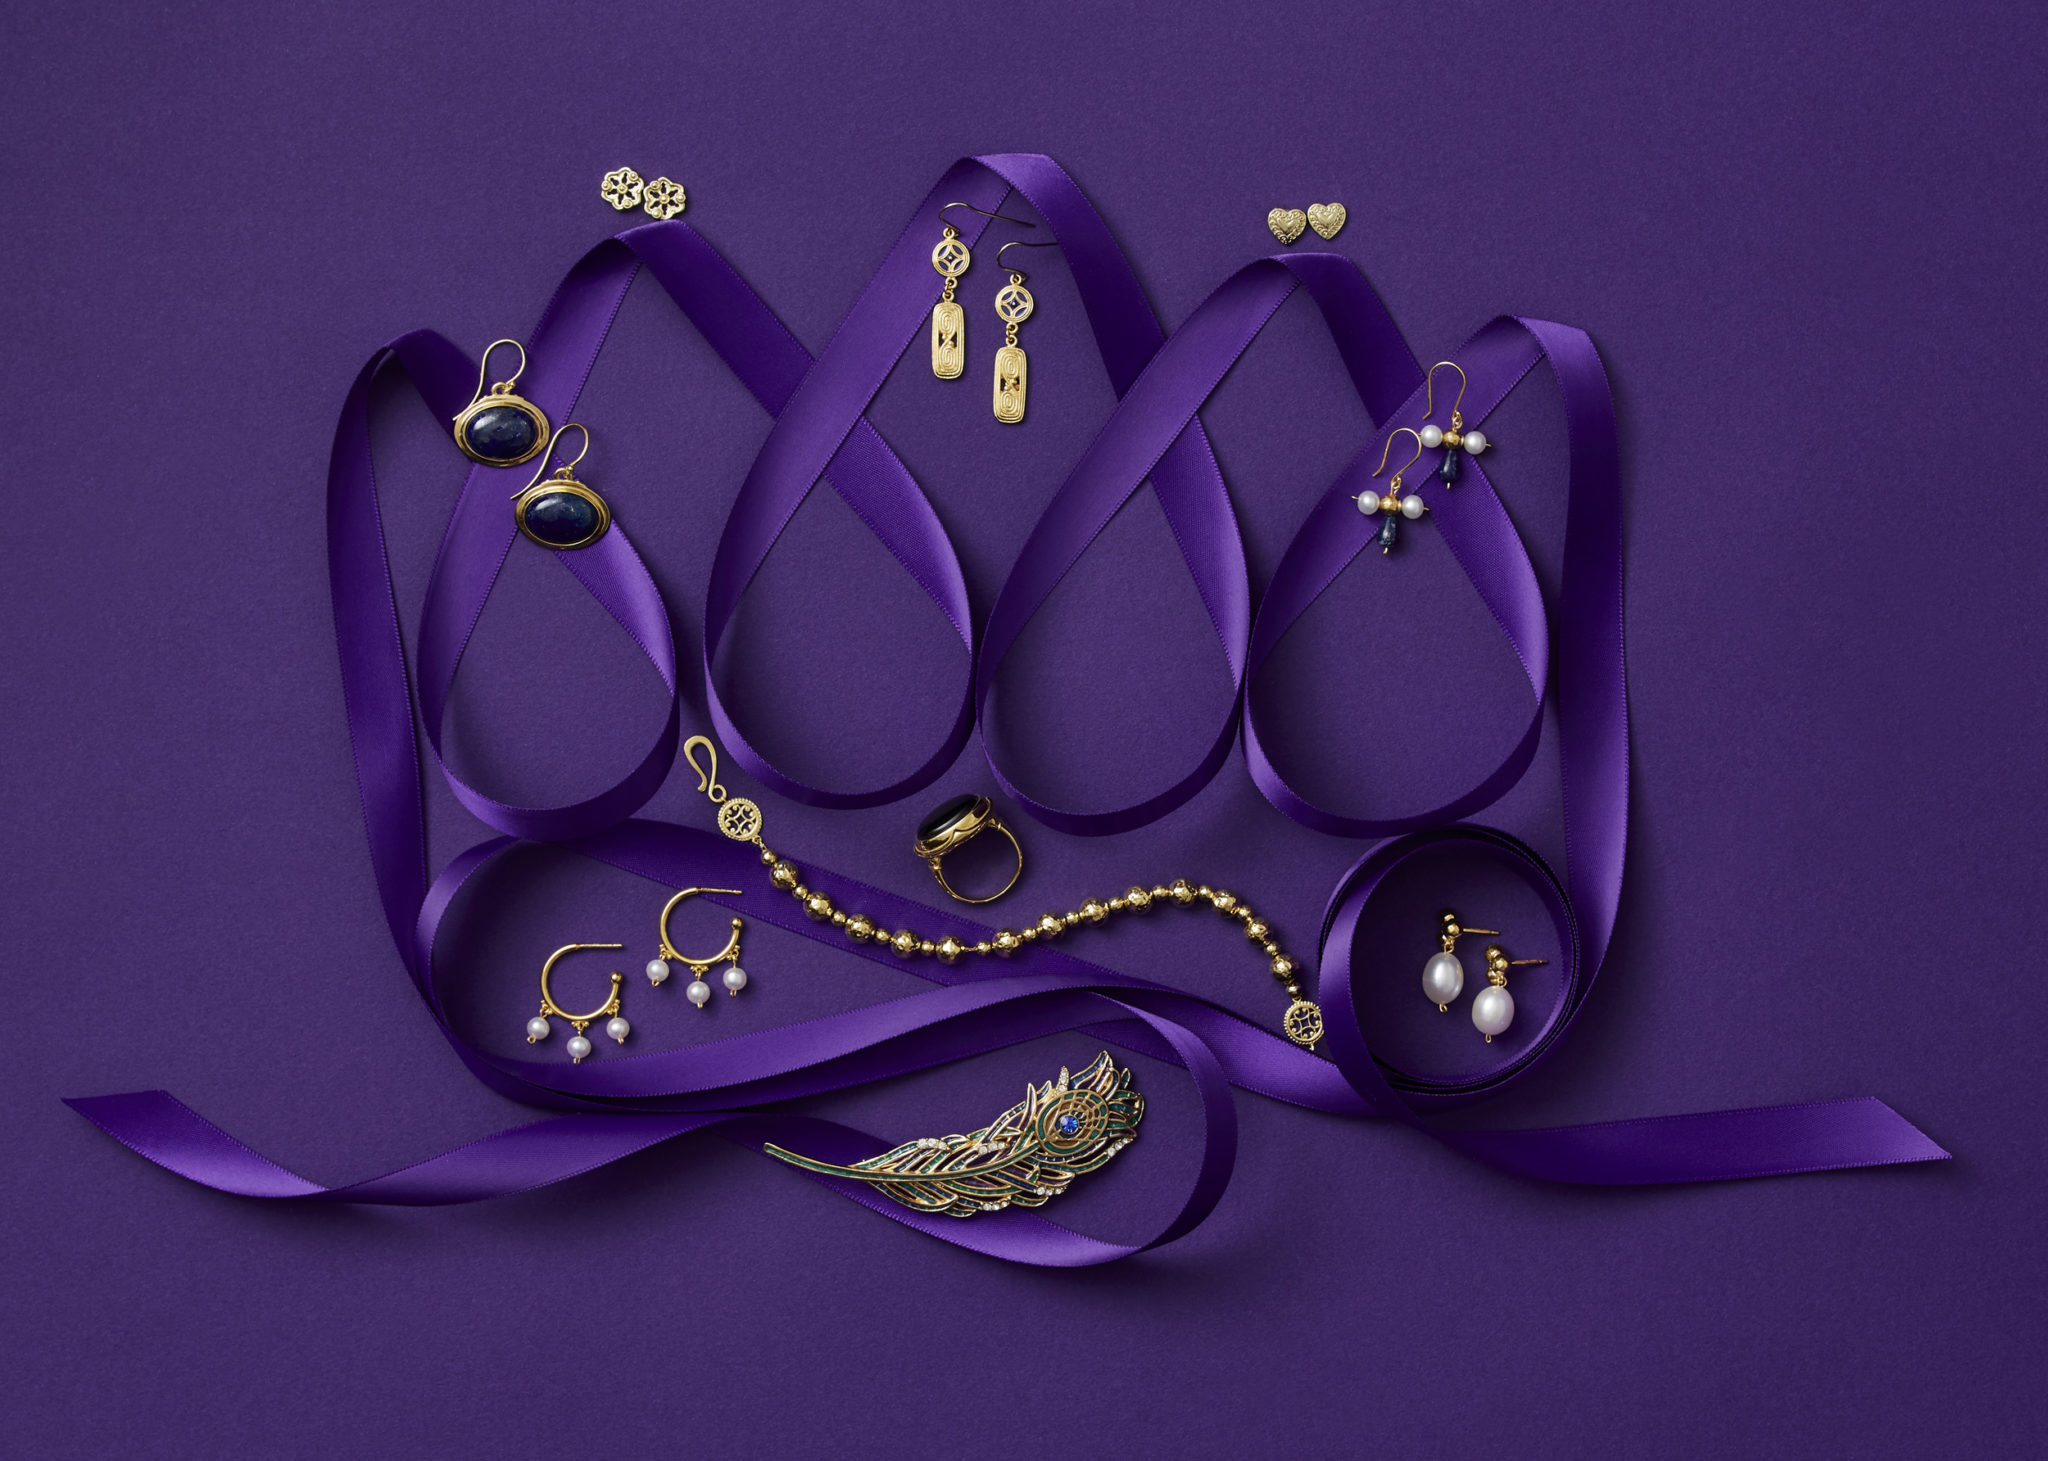 marketing still life photograph of a crown made of purple ribbon adorned with gold and pearl jewelry including earrings, a pin, a ring, and bracelets on a purple background.